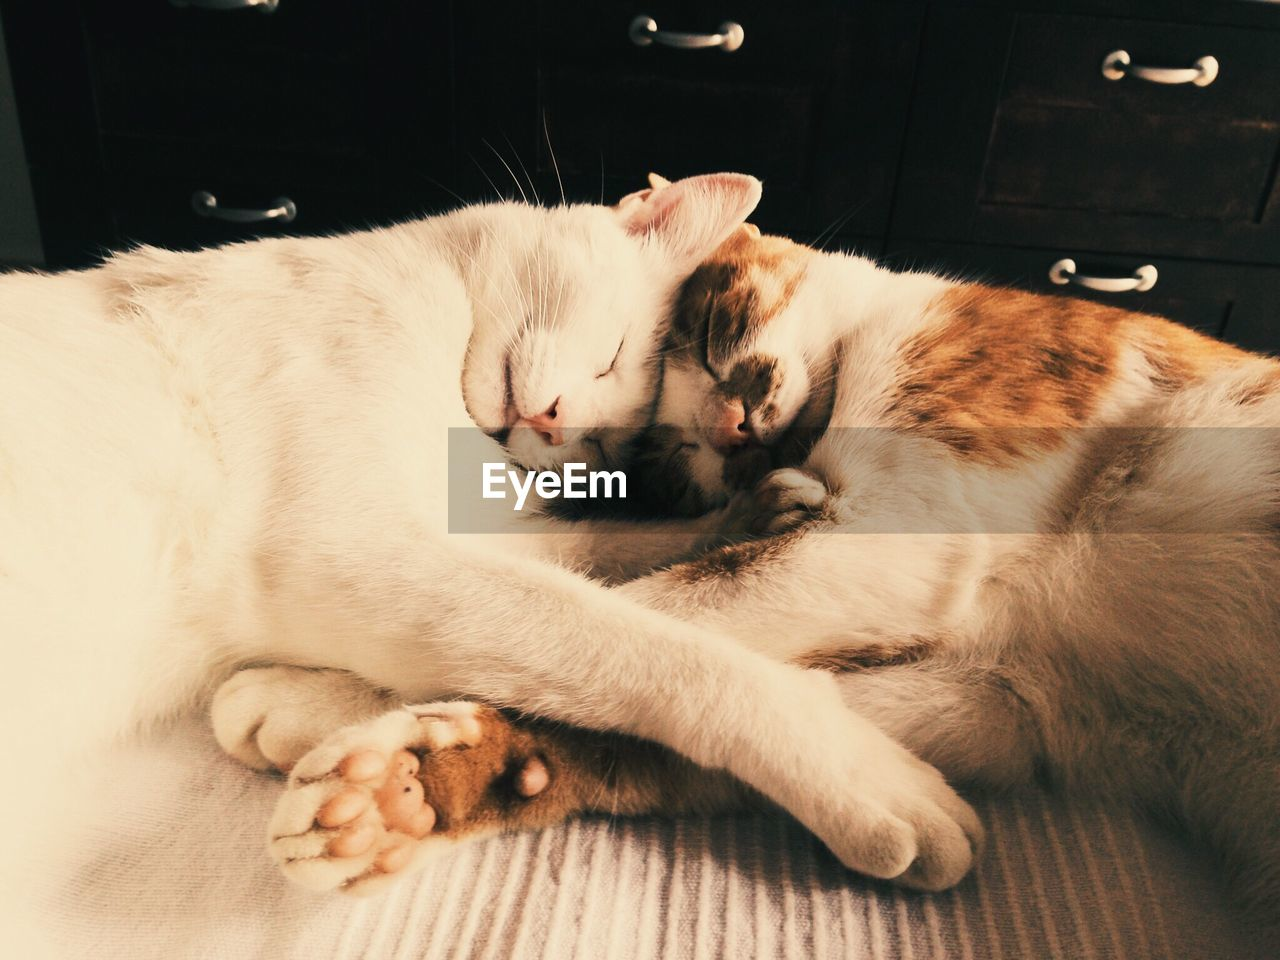 pets, domestic, domestic animals, animal themes, one animal, mammal, animal, vertebrate, relaxation, domestic cat, cat, indoors, feline, resting, eyes closed, sleeping, lying down, no people, furniture, home interior, whisker